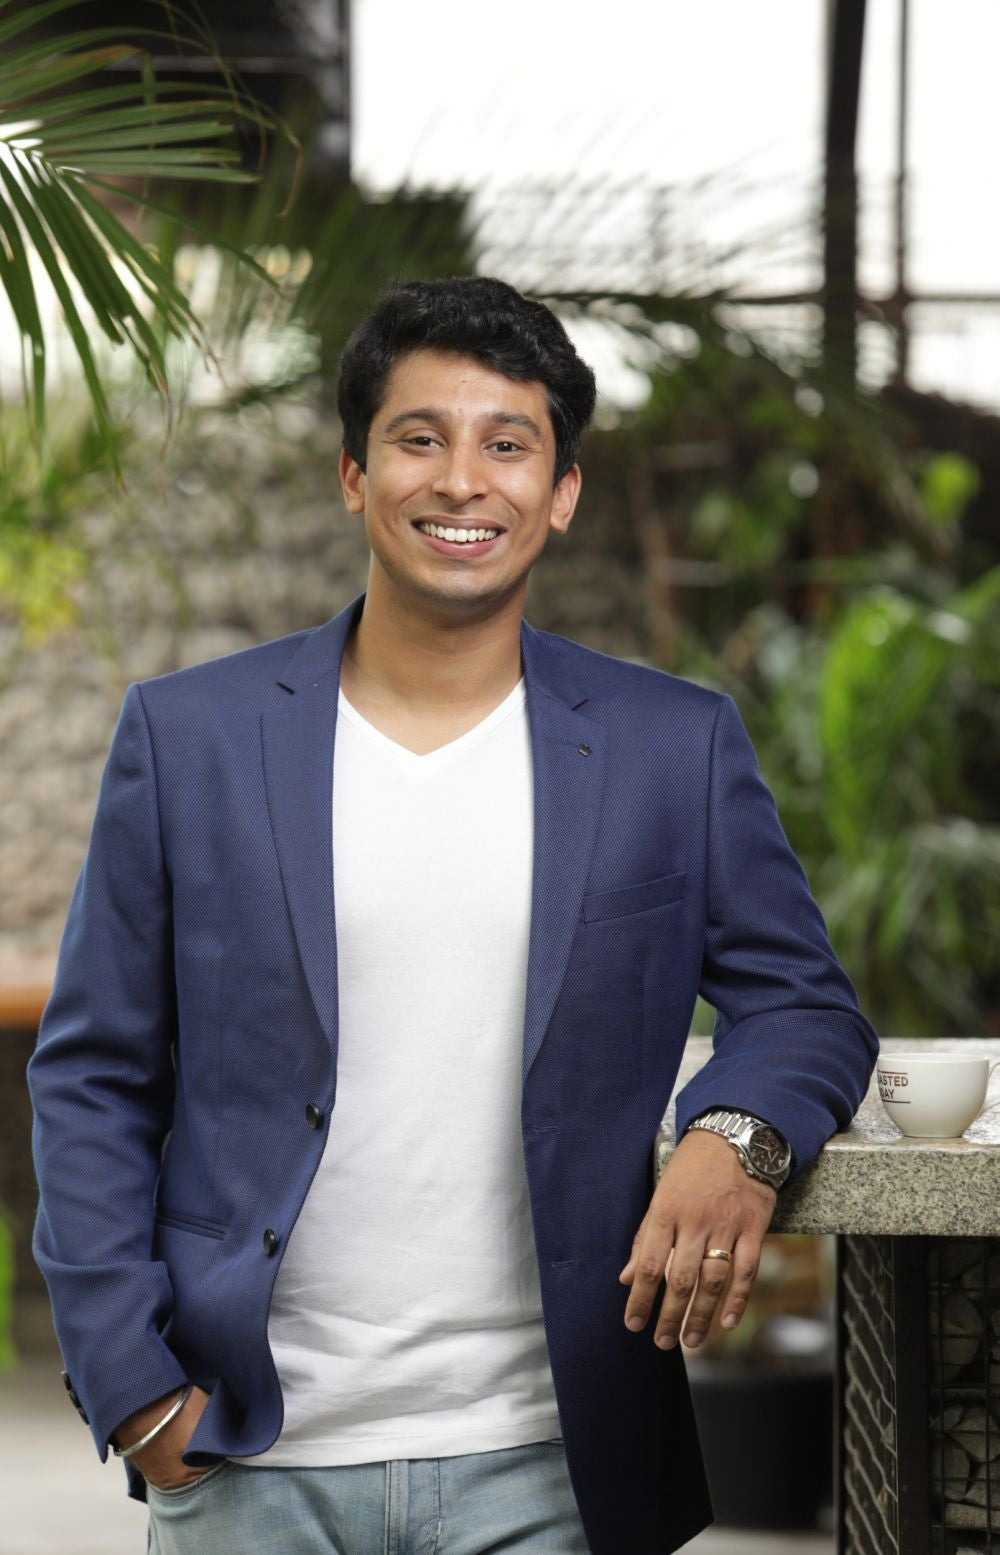 The Marketer-in-chief – Vidit Aatrey, 28